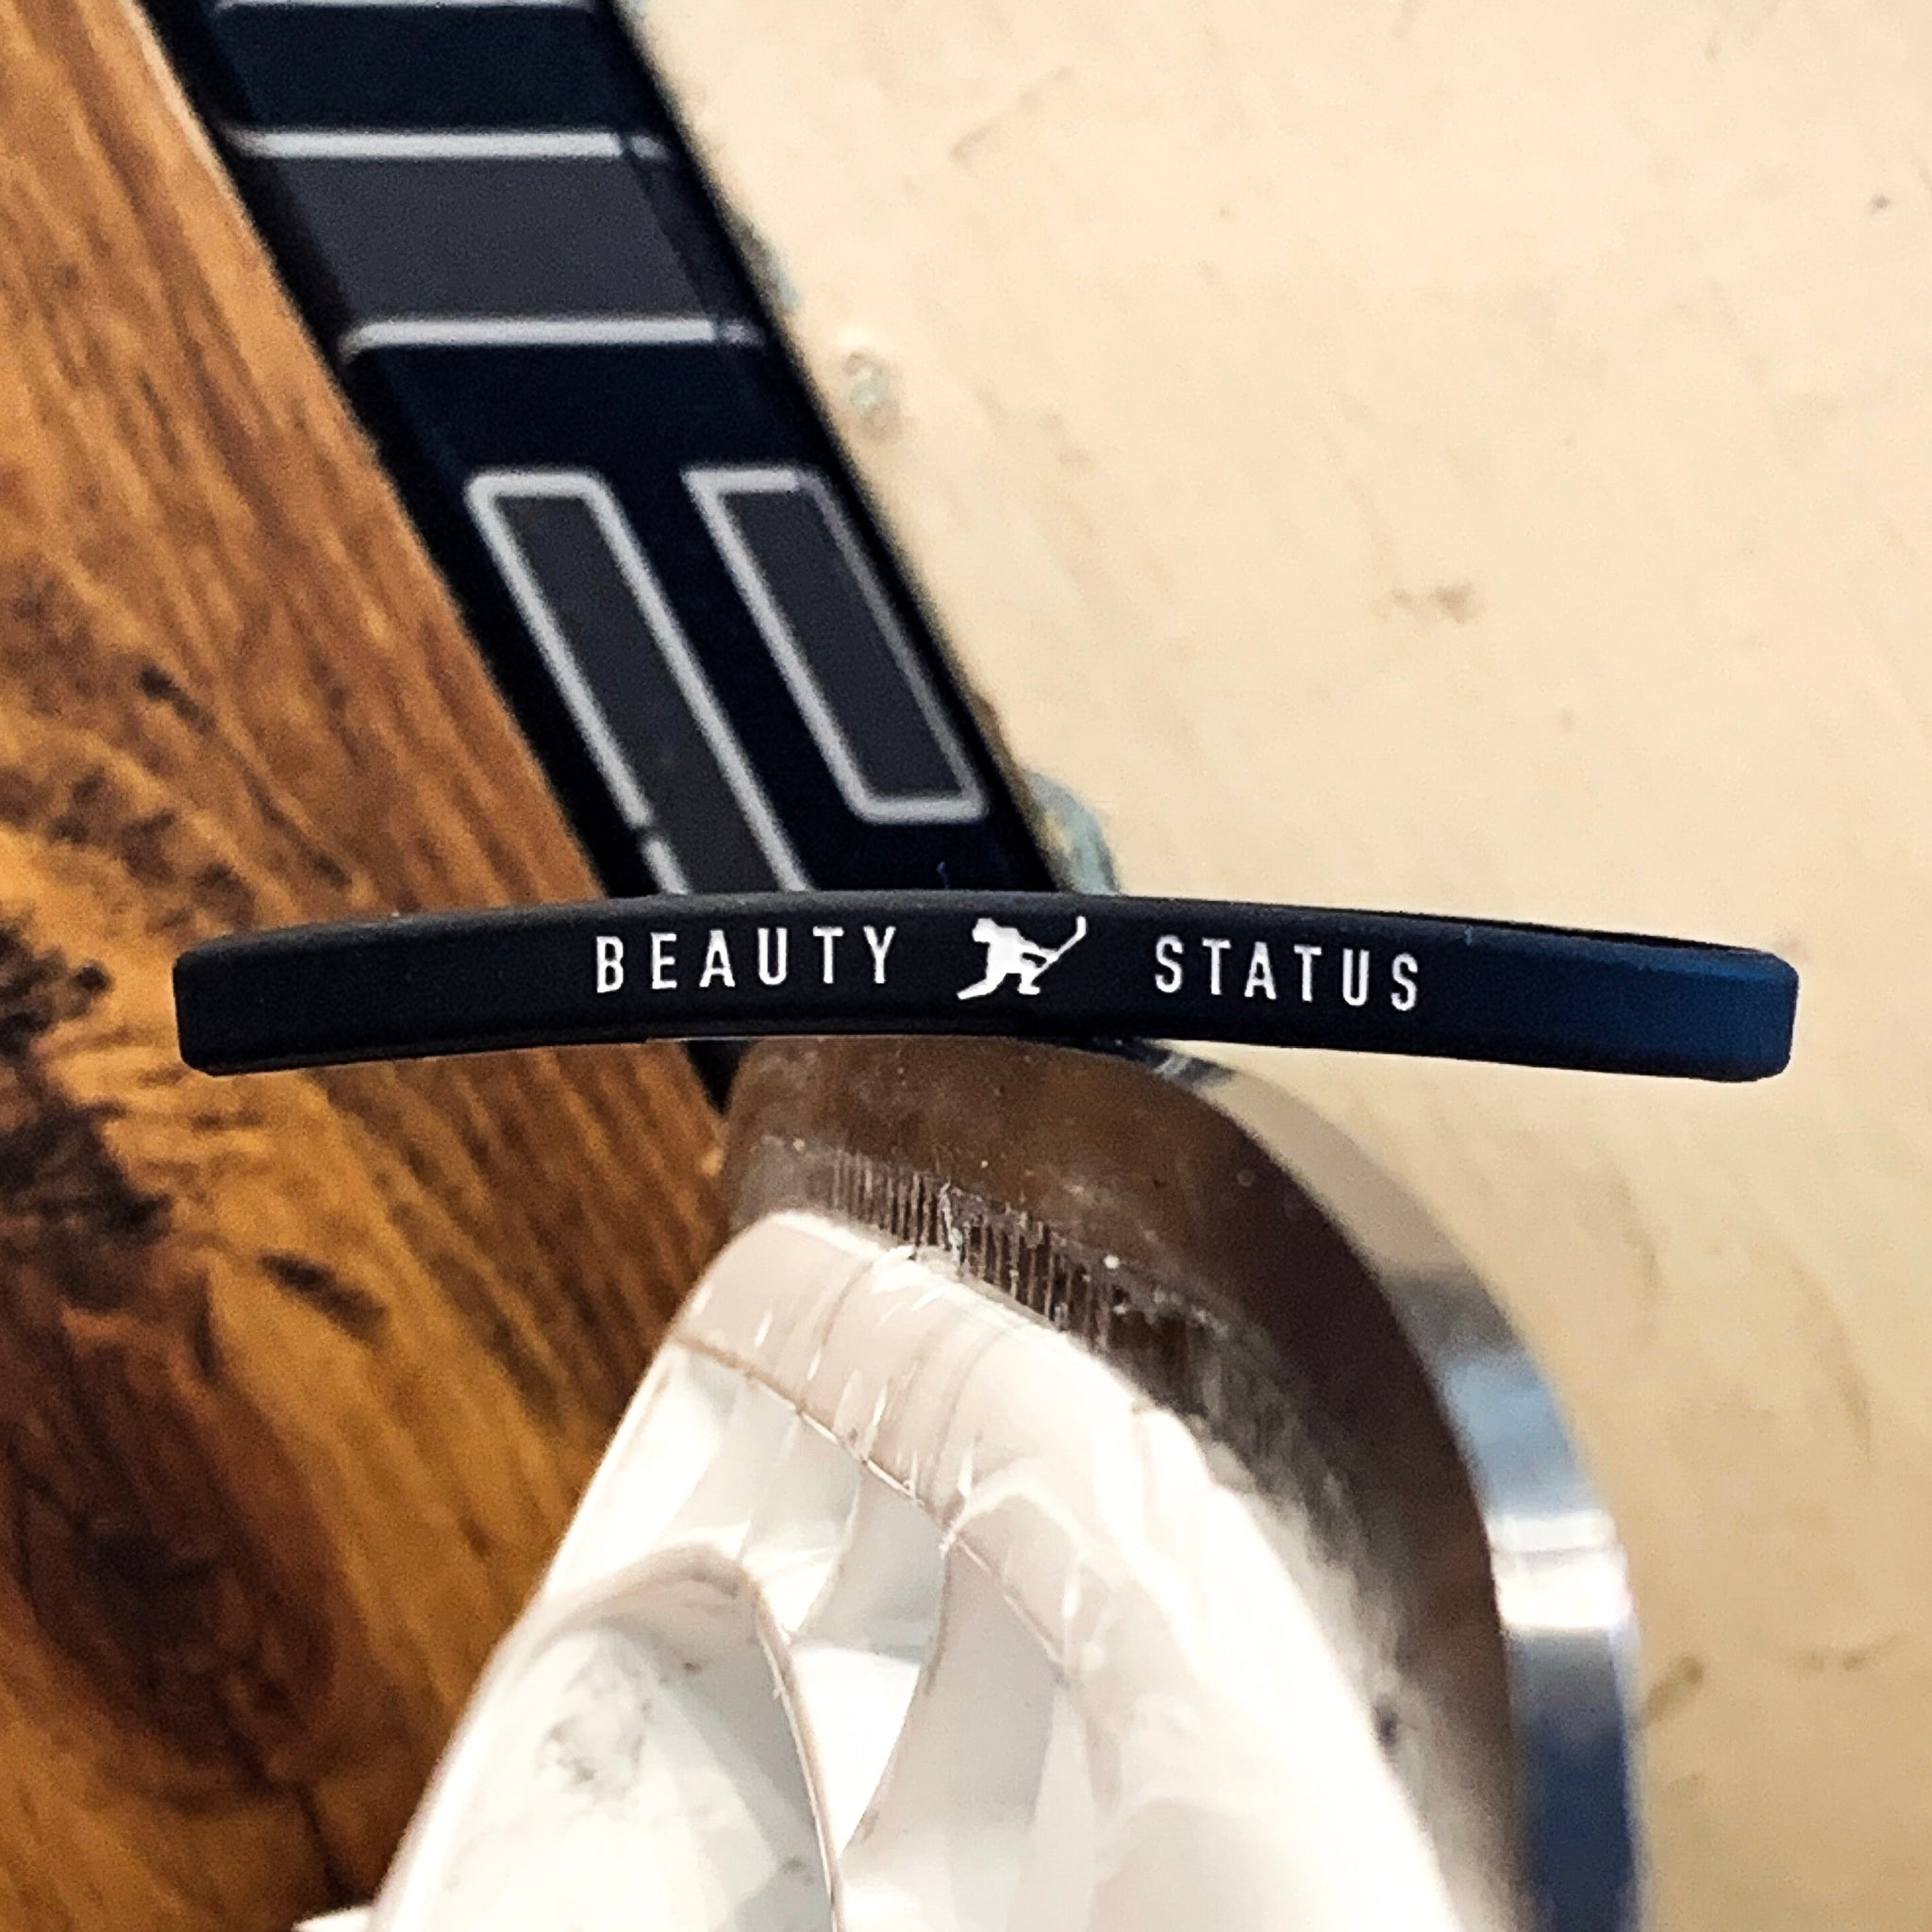 Team Wristband - Beauty Status Hockey Co.